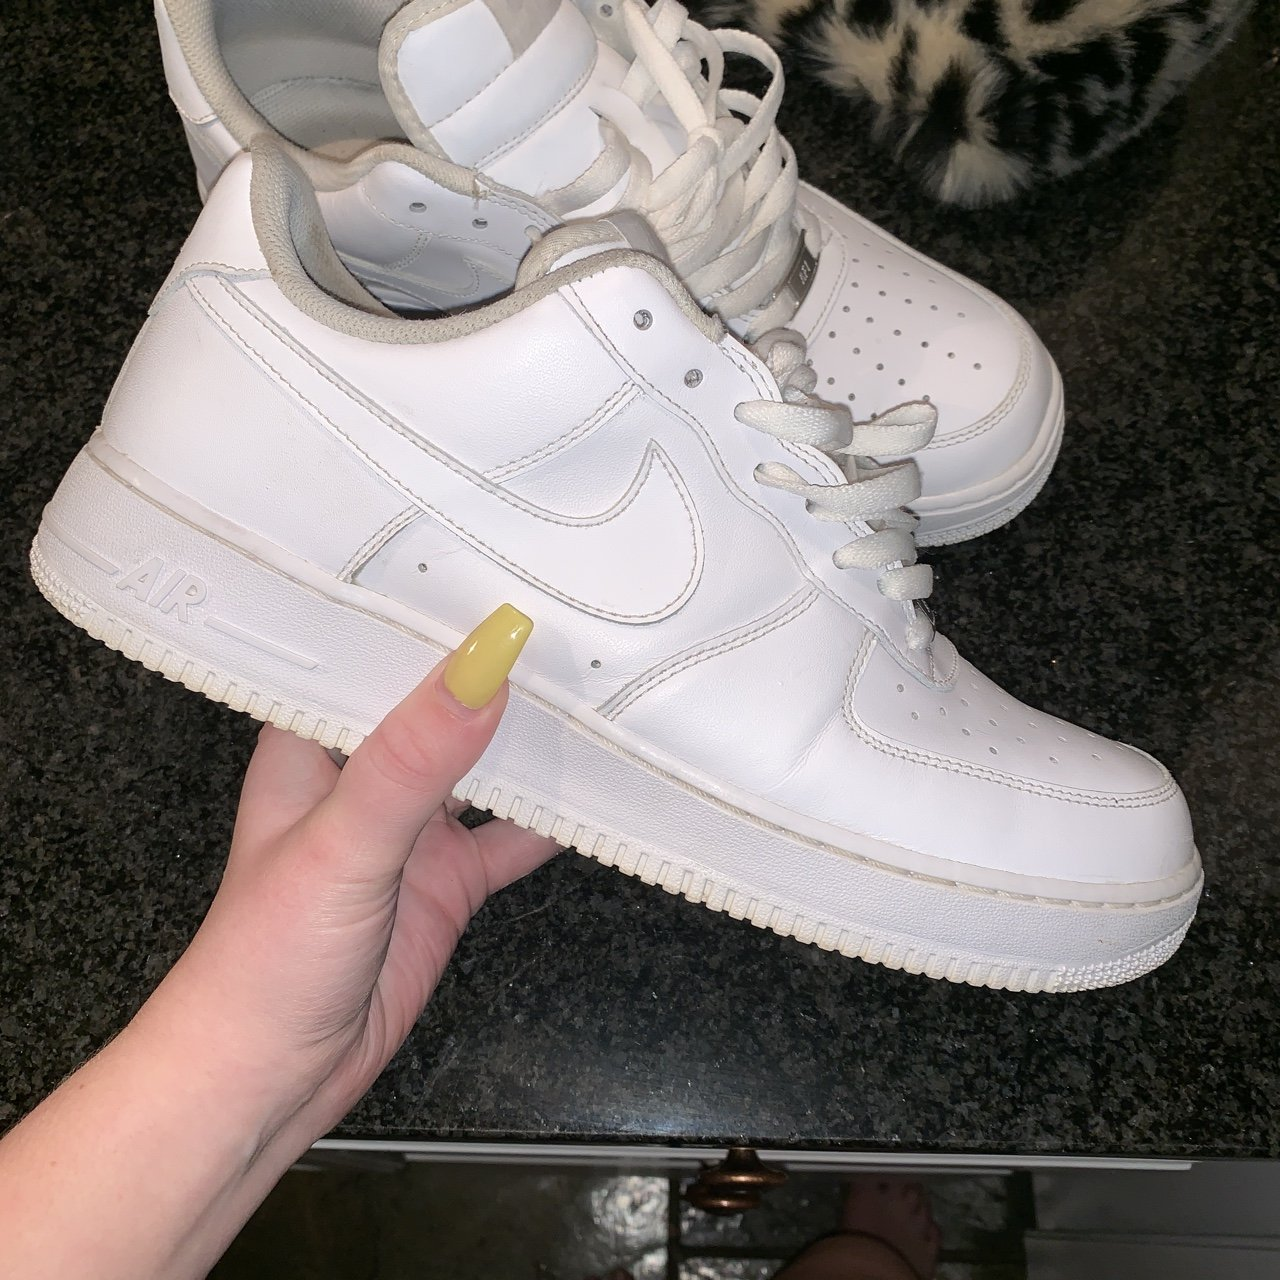 e58797c393bd Nike air force in great condition worn only a few times depop jpg 1280x1280 Emma  chamberlain